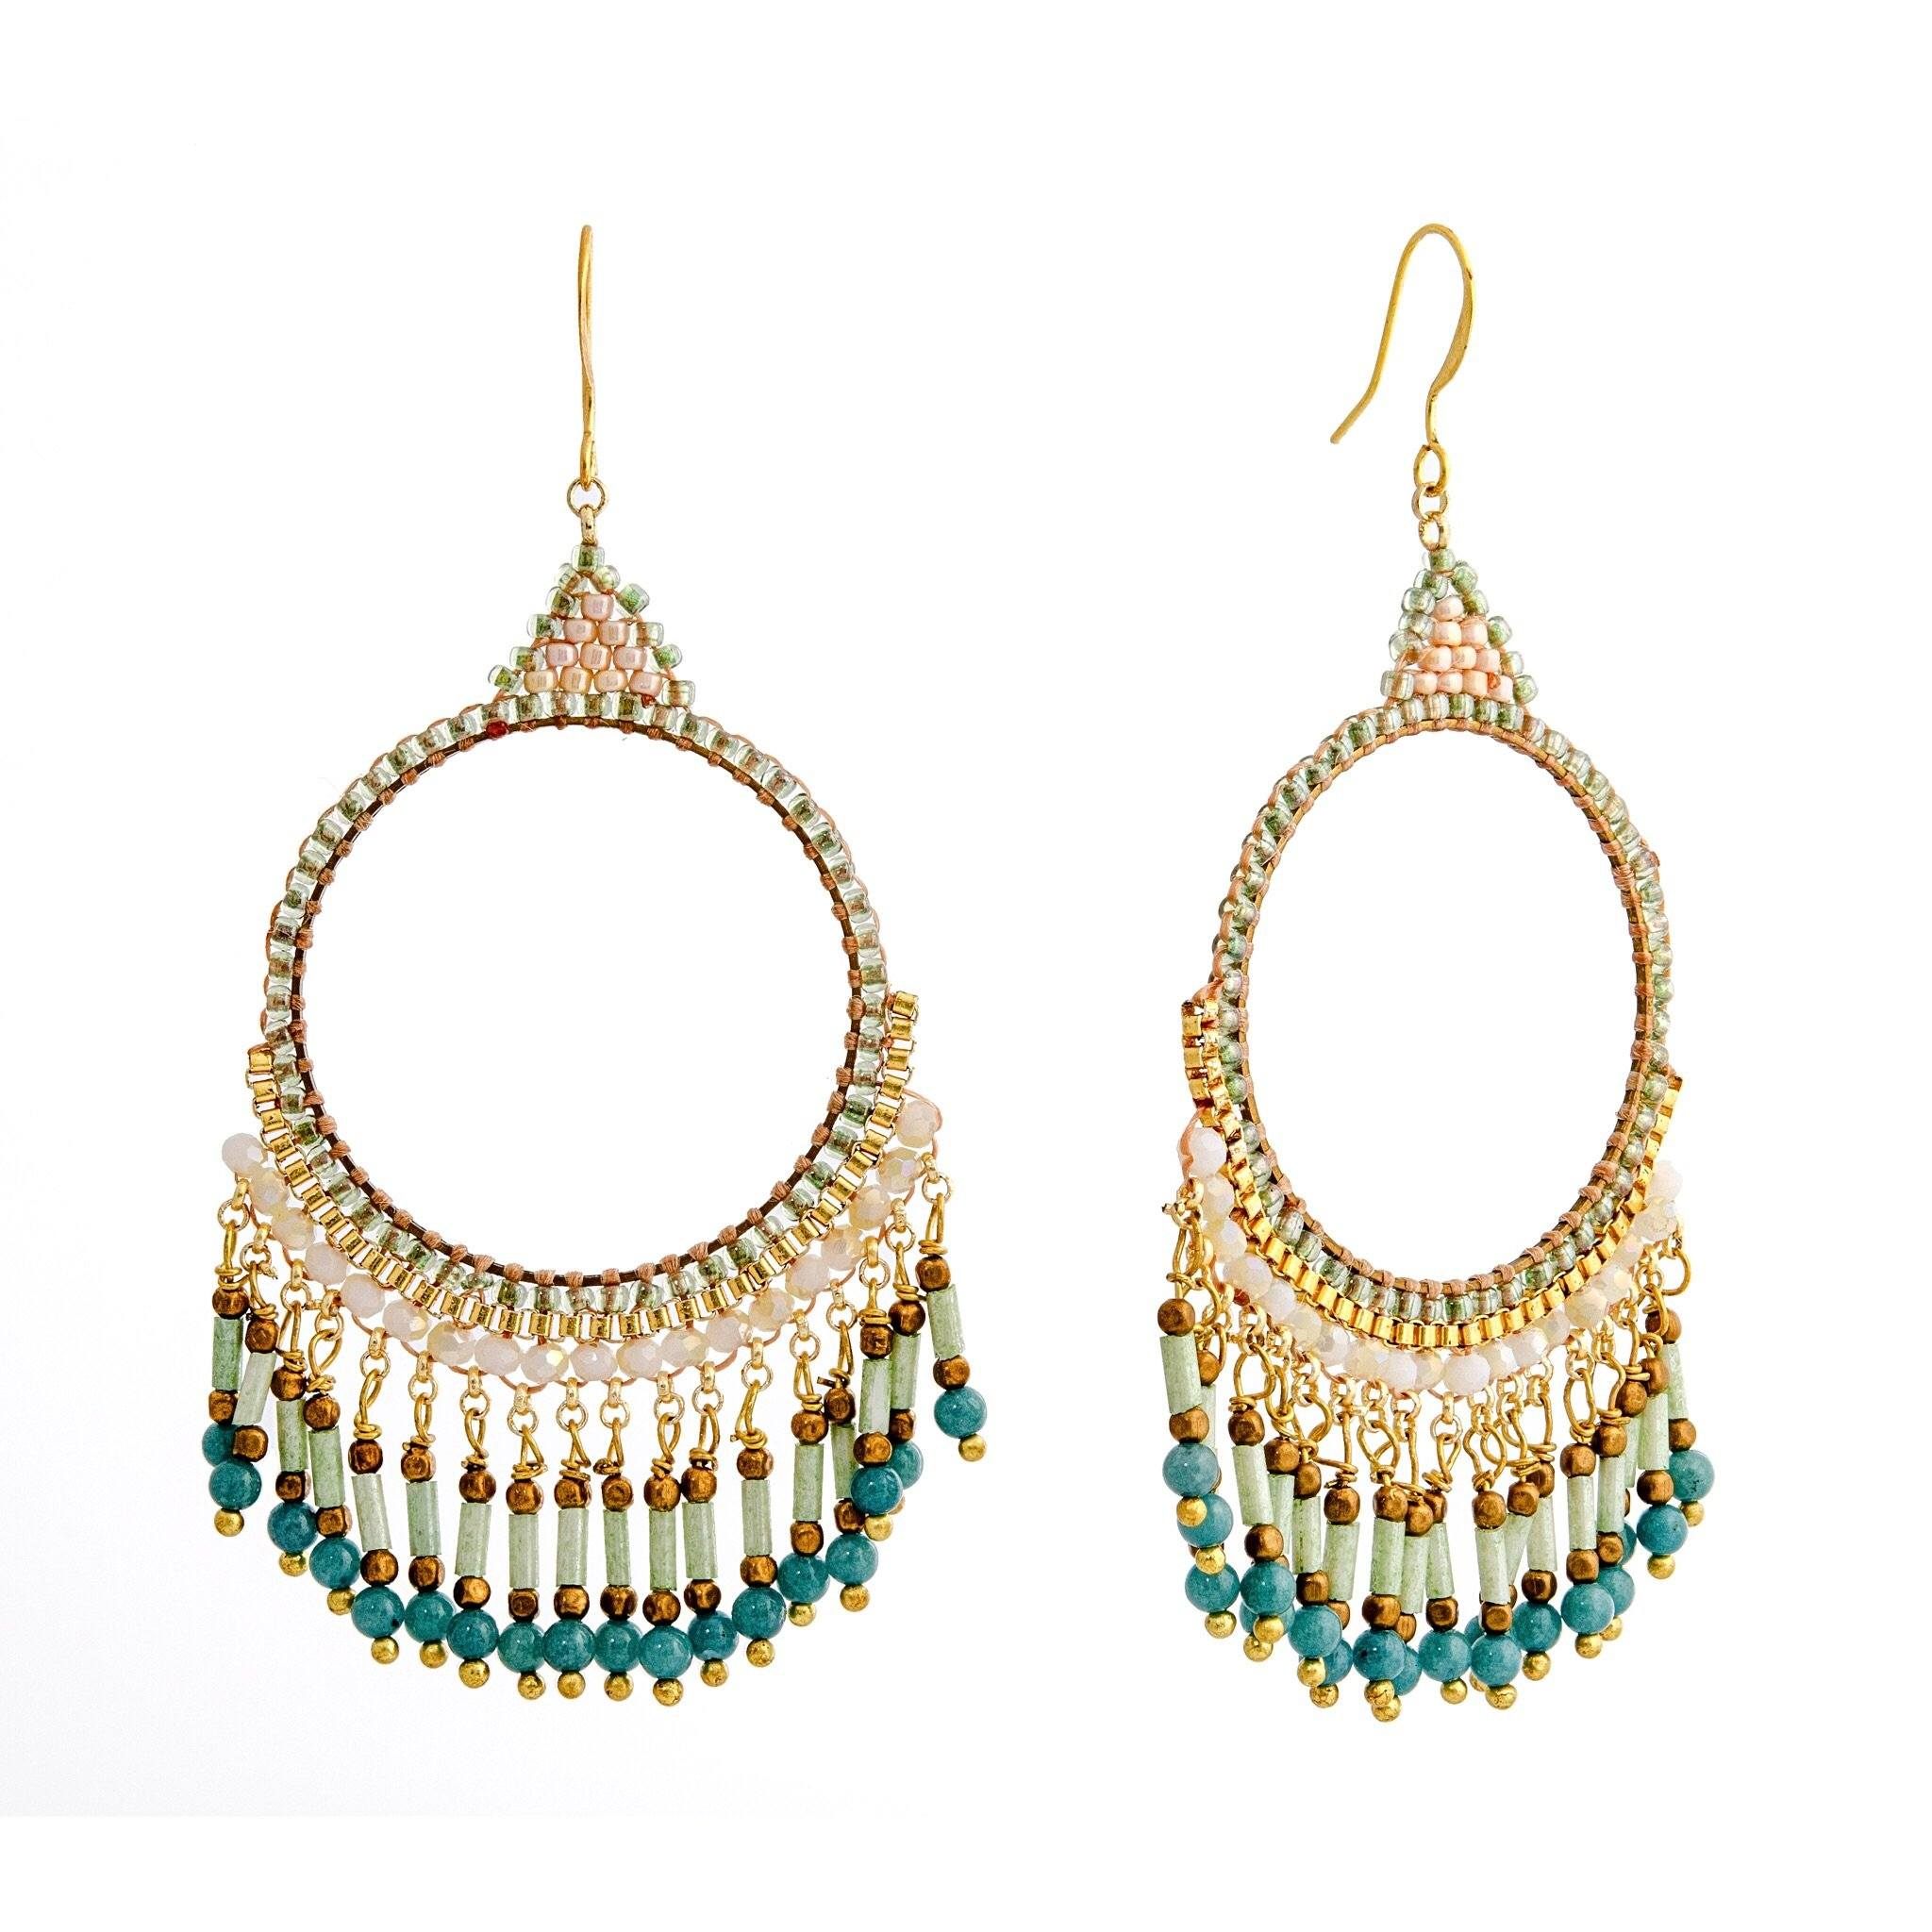 BOHEMIA aqua earrings - MadamSiam